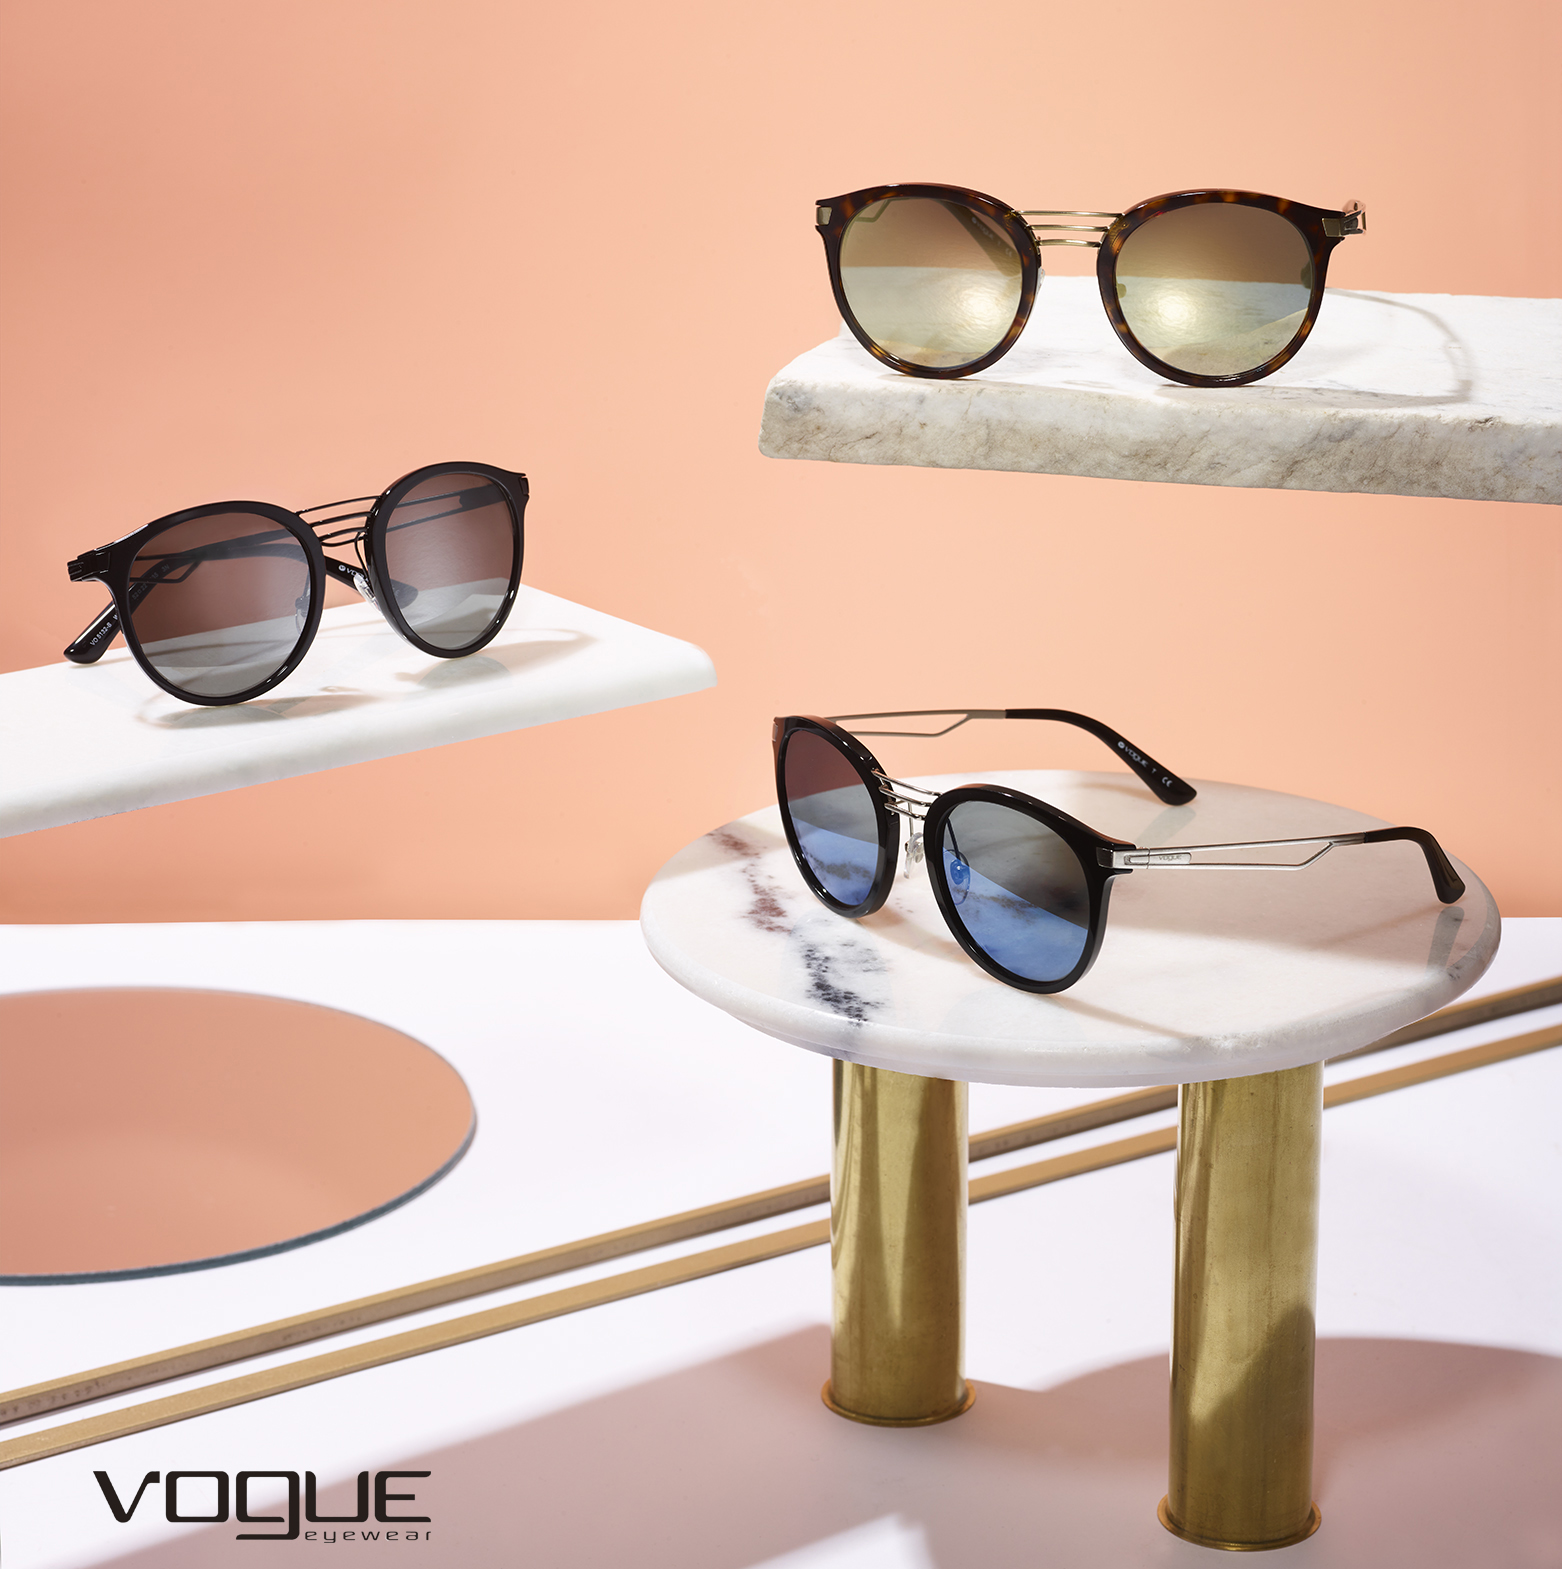 flat2016_NOV_7_VOGUE_EYEWEAR_REFINERY29_ShanaNovak_COMP3 copy.jpg